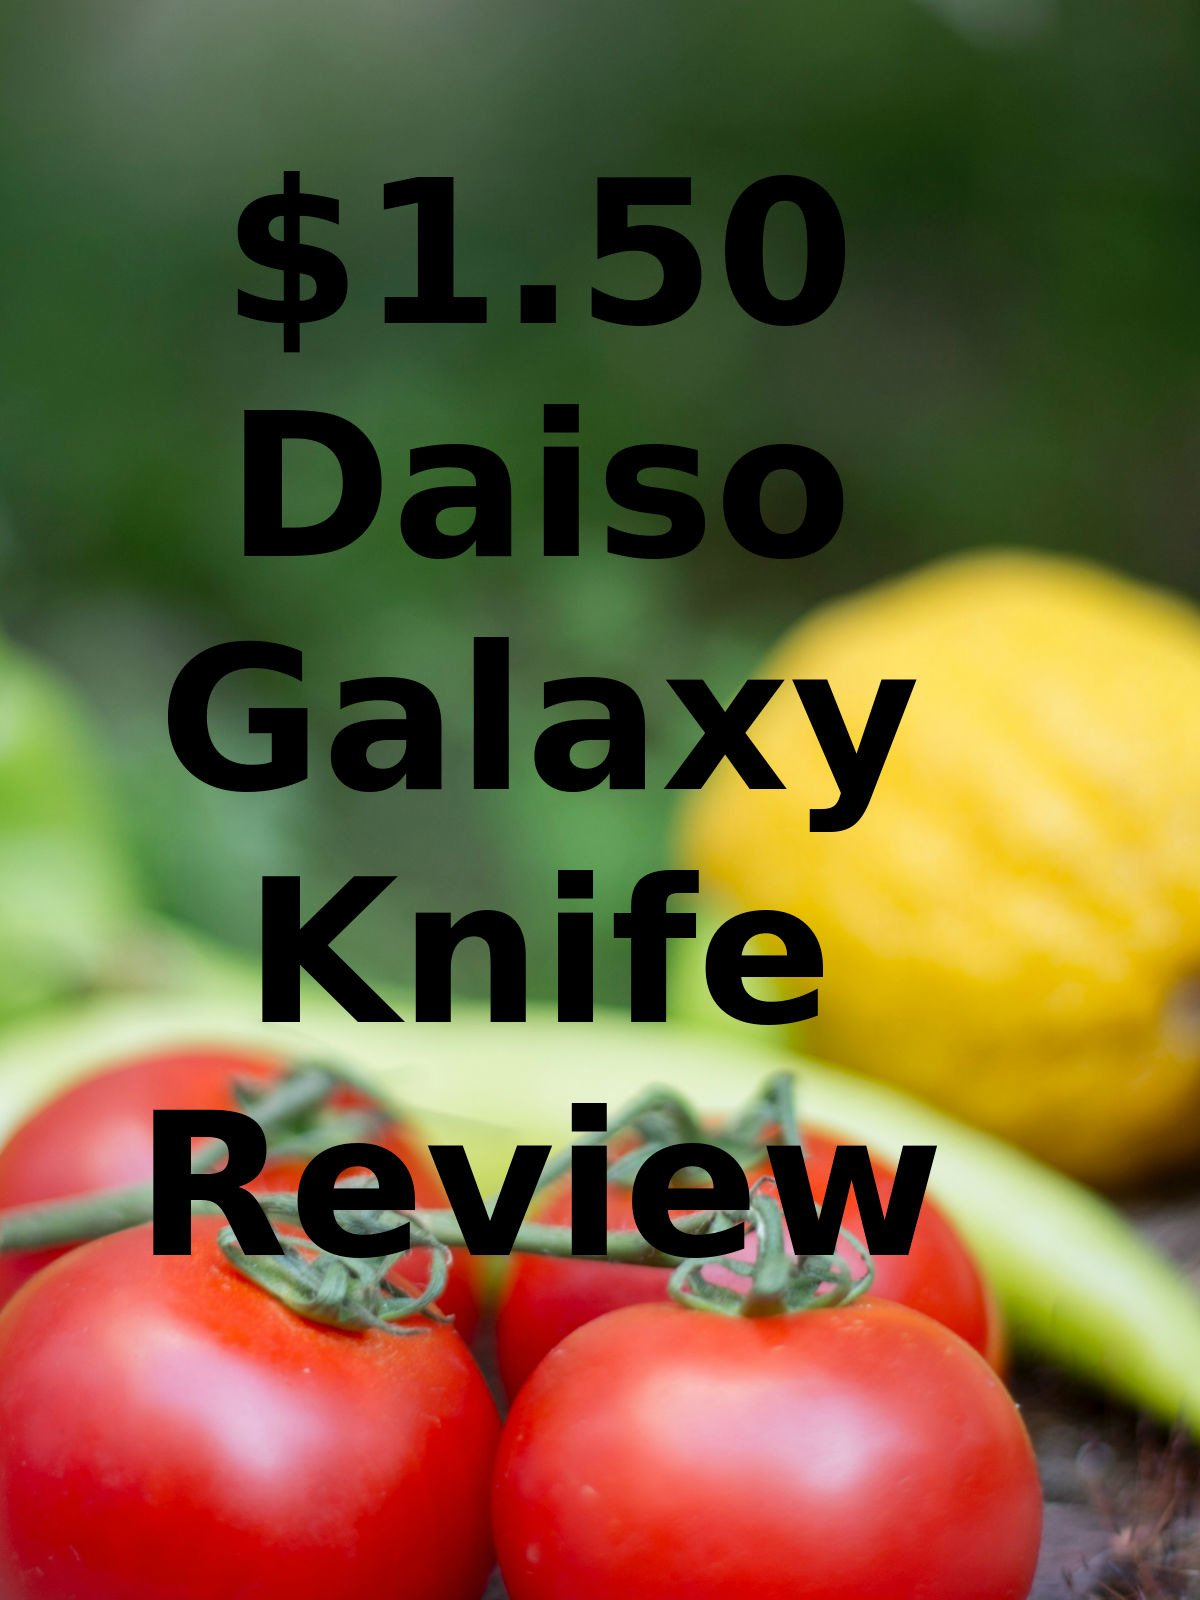 Review: $1.50 Daiso Galaxy Knife Review